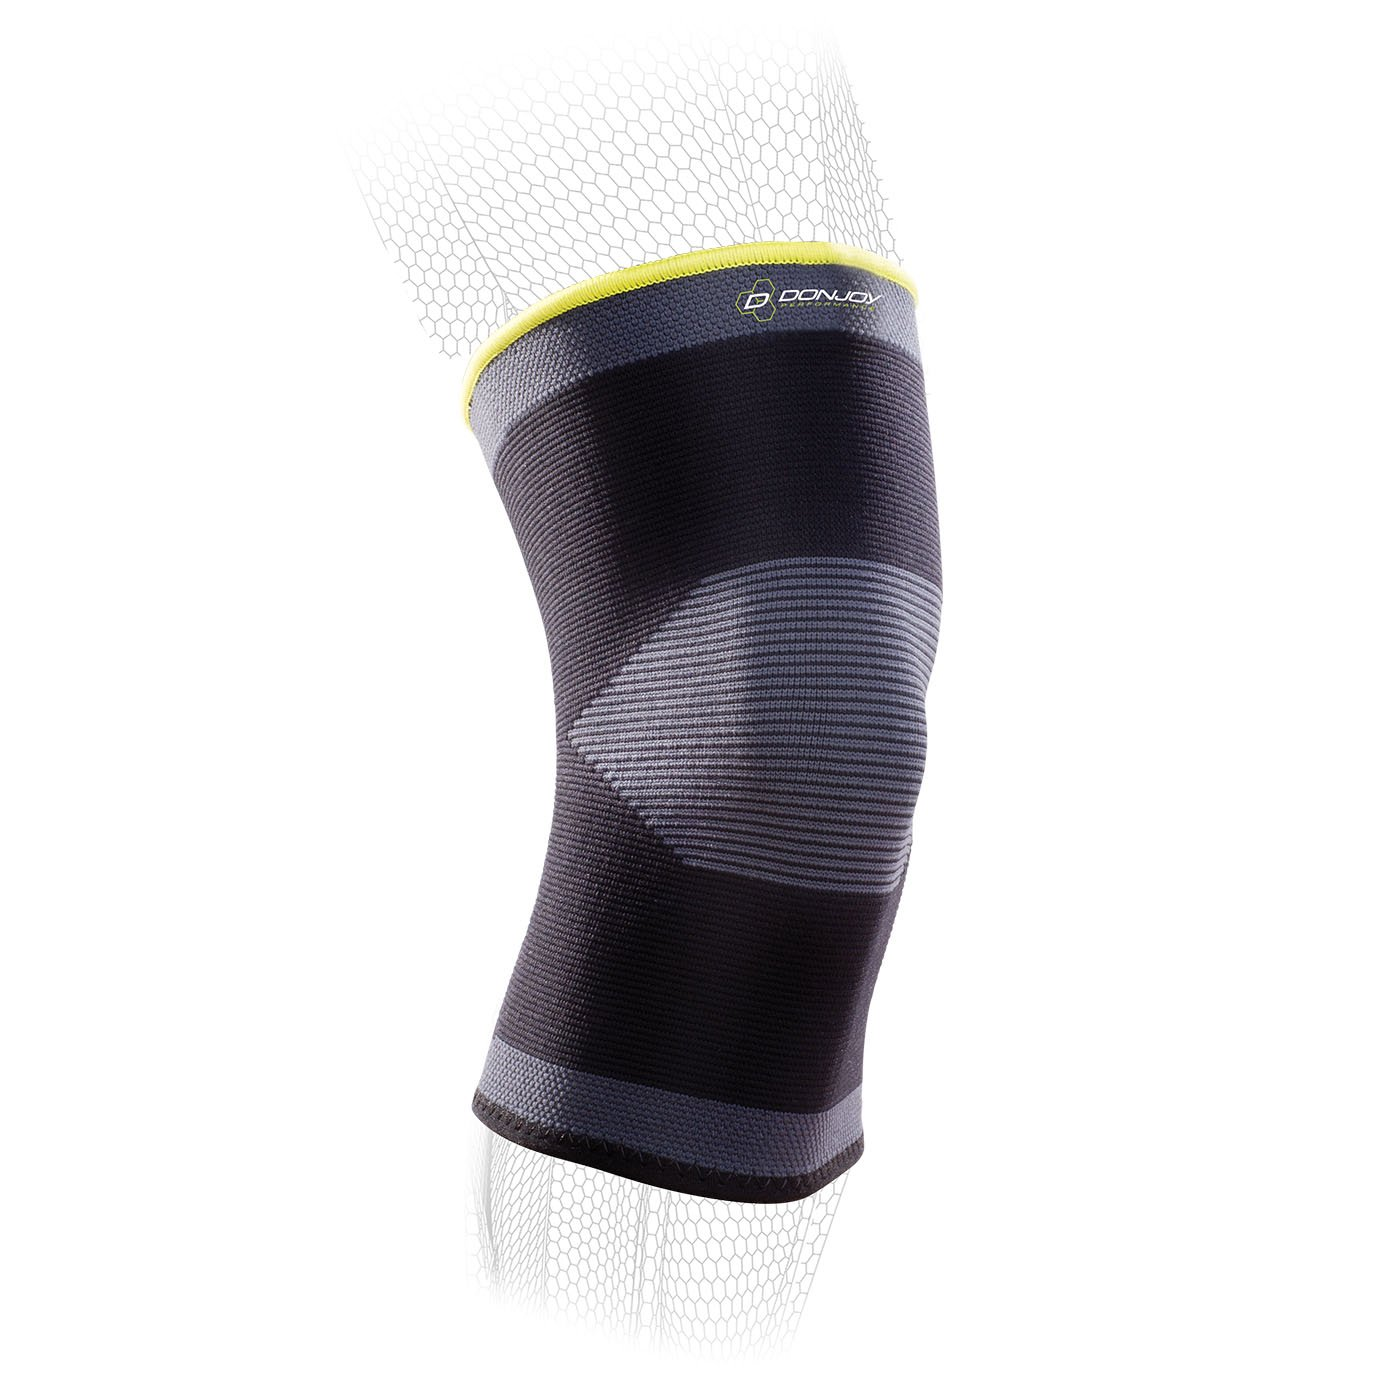 DonJoy Performance High quality Popular overseas new Knit Compression Knee - Mild Sleeve f Support